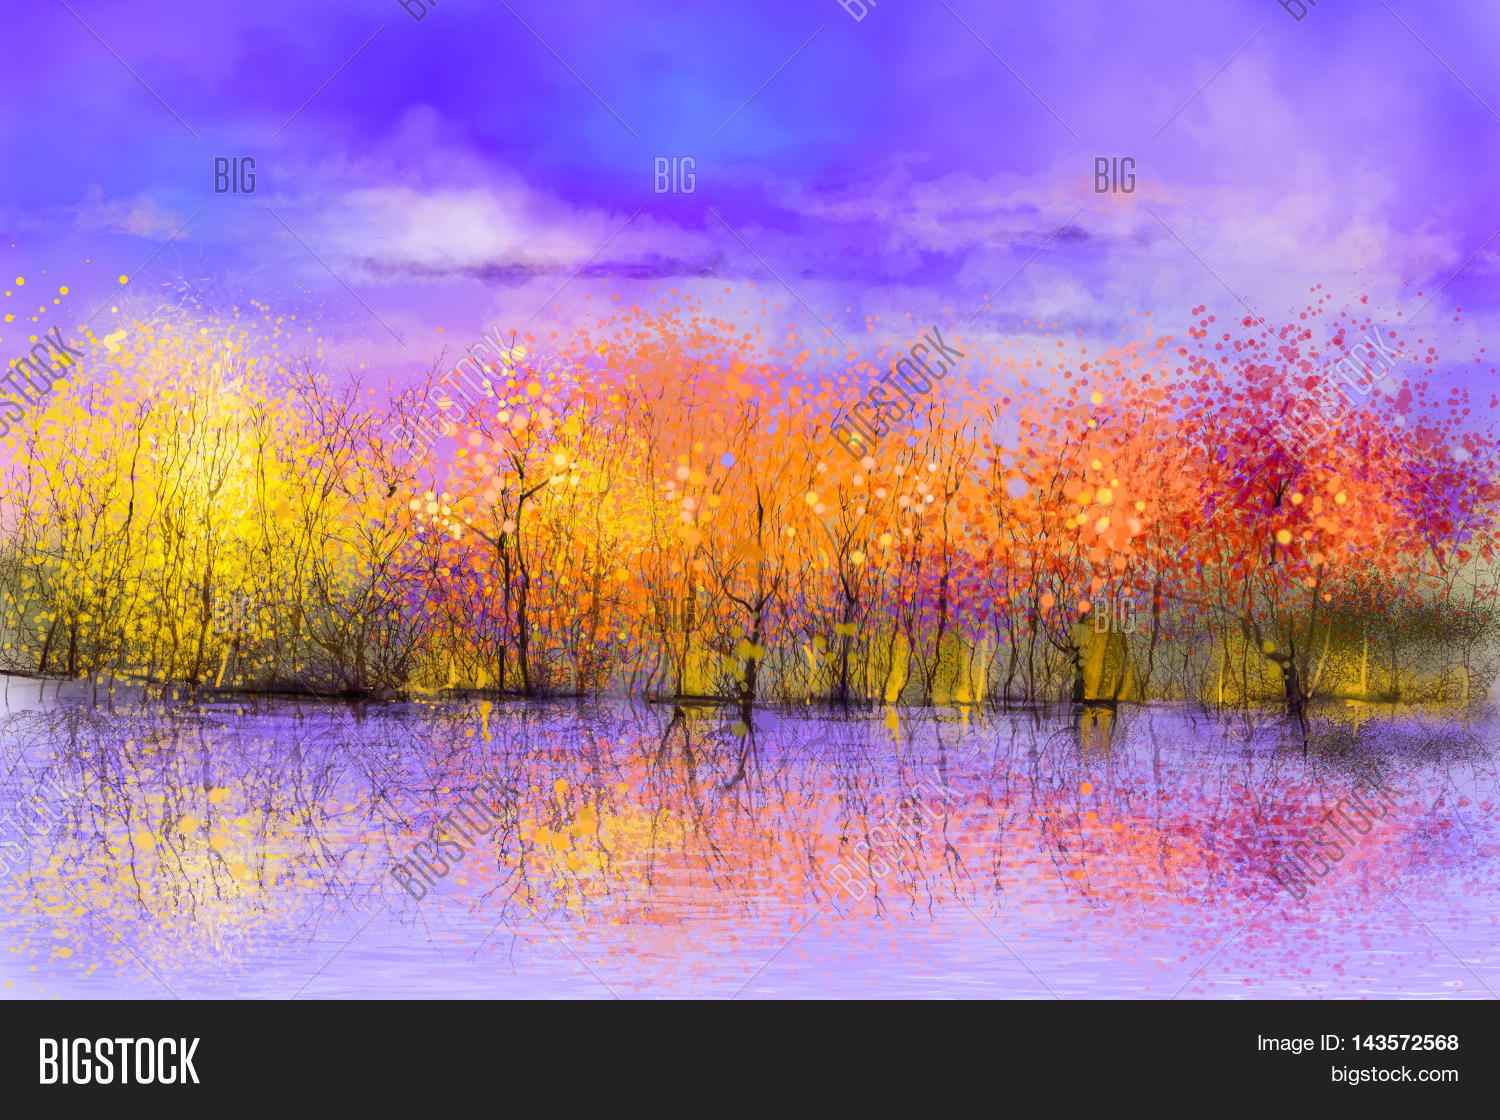 Oil painting landscape colorful image photo bigstock for Abstract nature painting